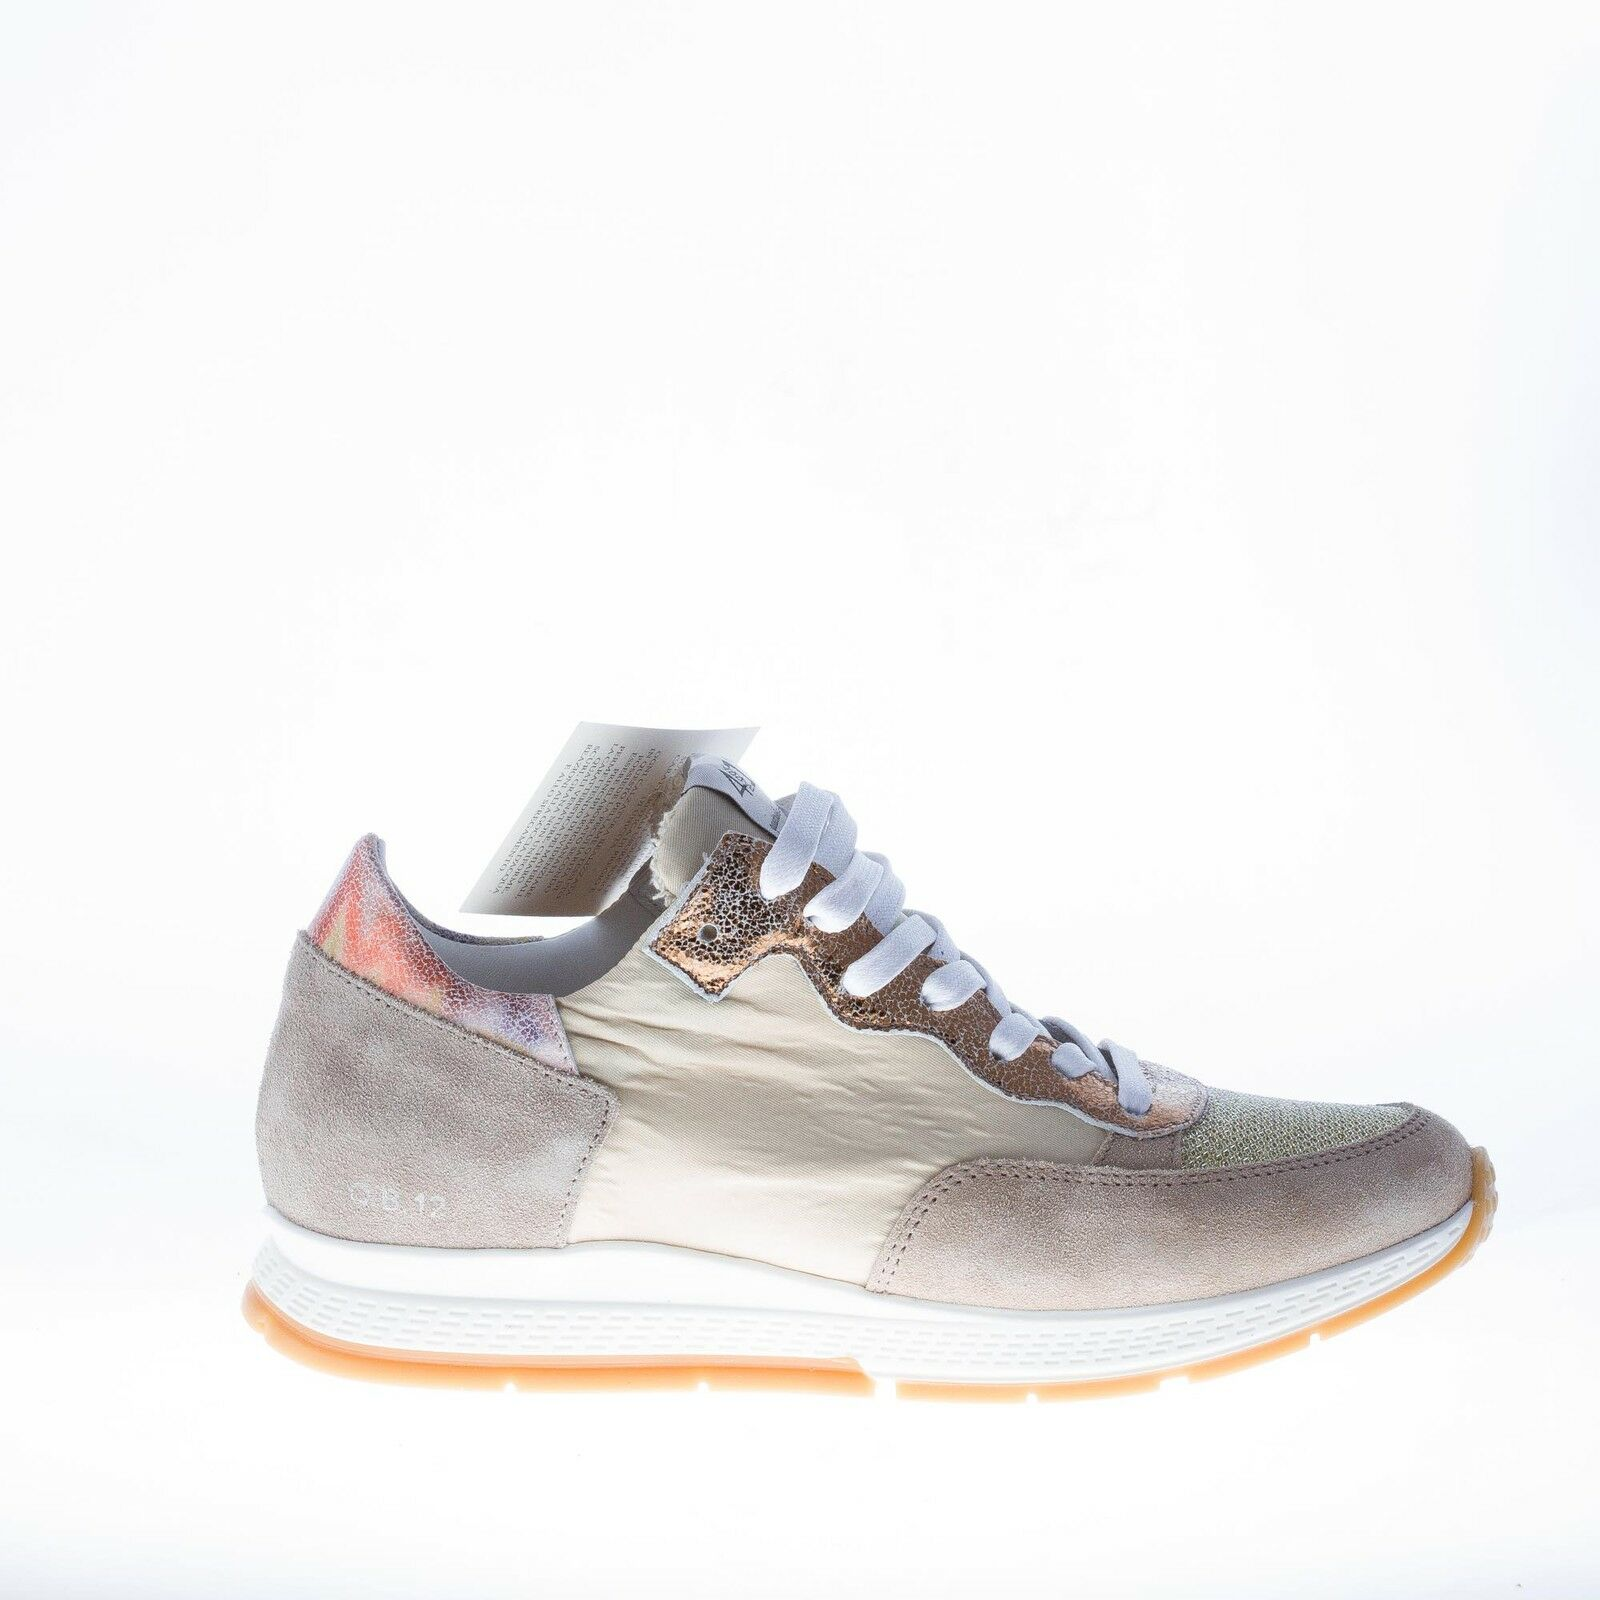 Quattrobarradodici womens women grey suede and natural fabric sneaker